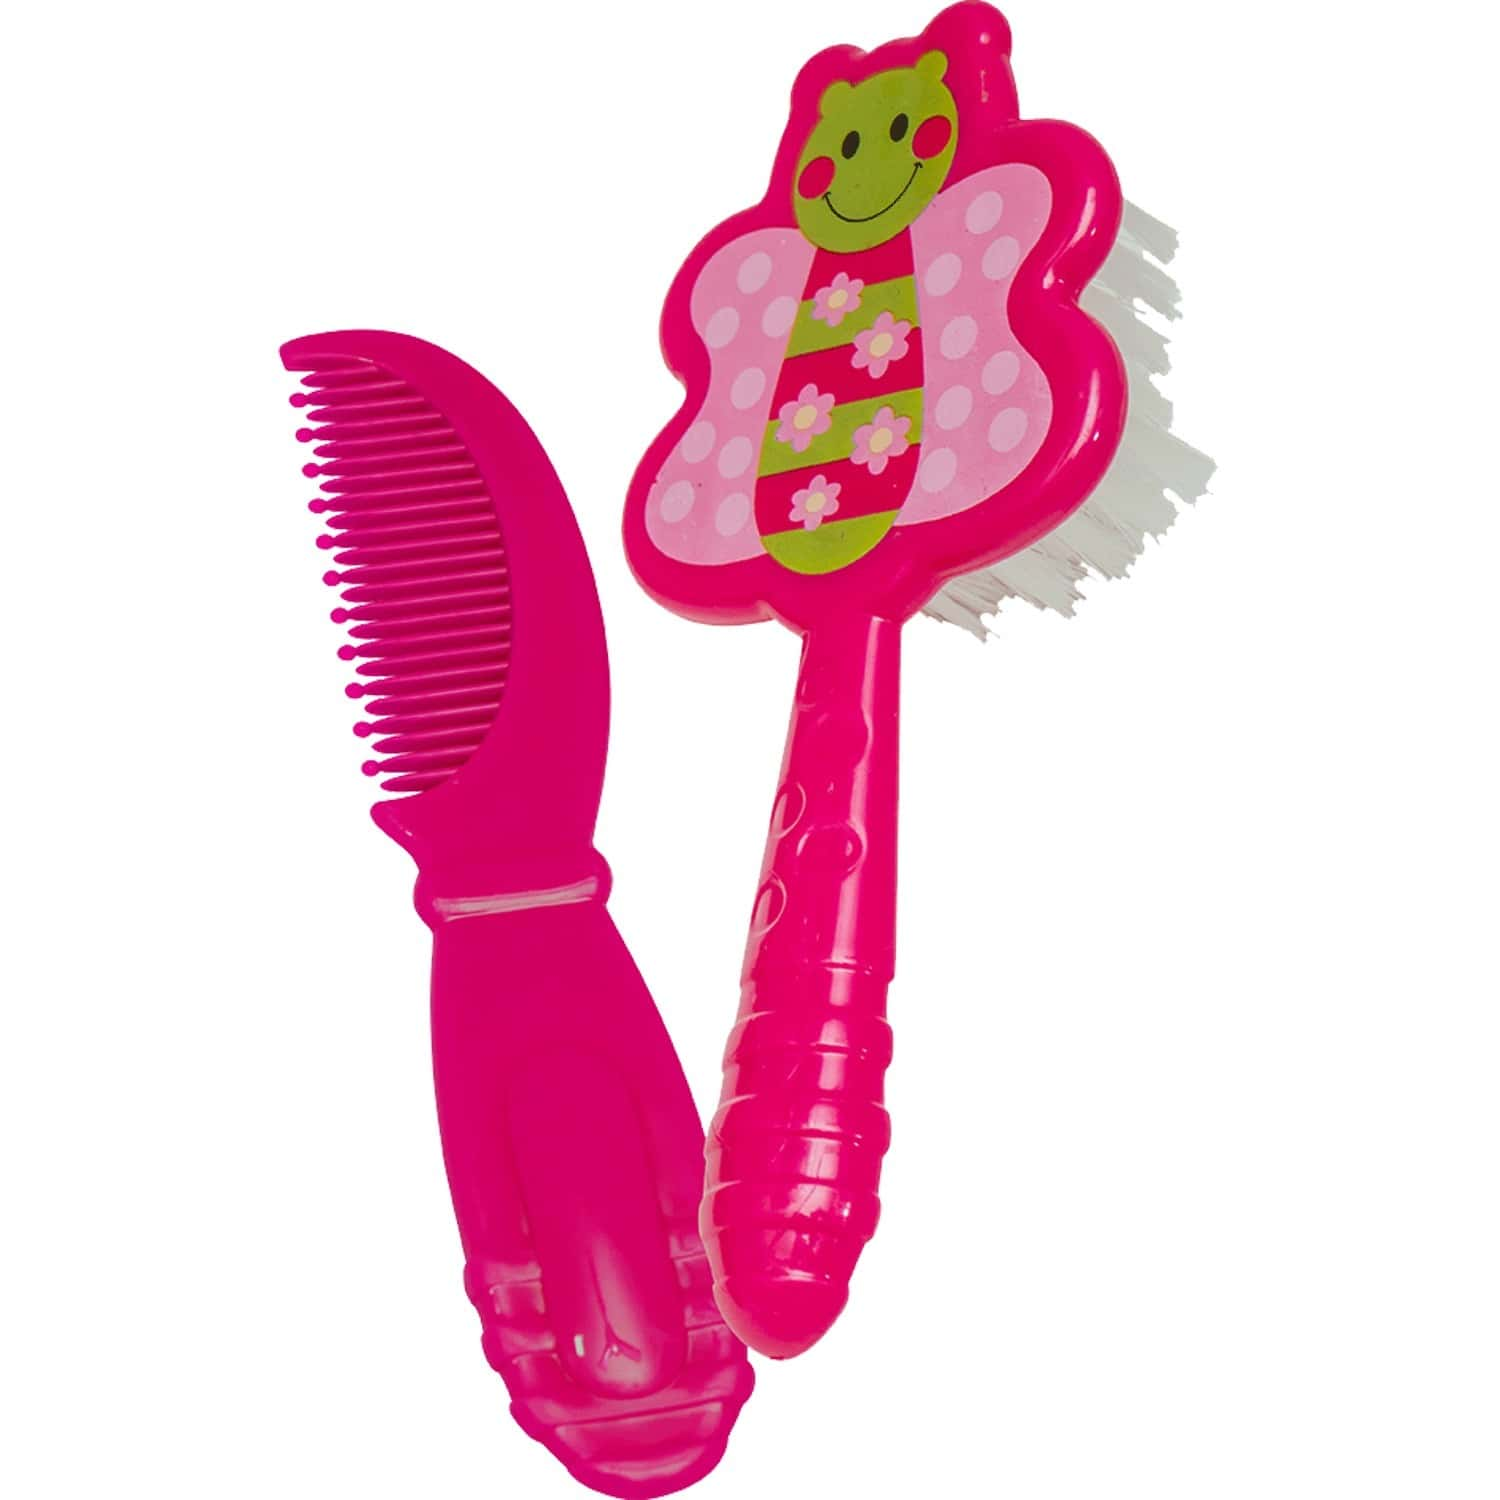 Beebaby Soft Brush And Comb Set For Newborn Babies Butterfly Shape. (pink)